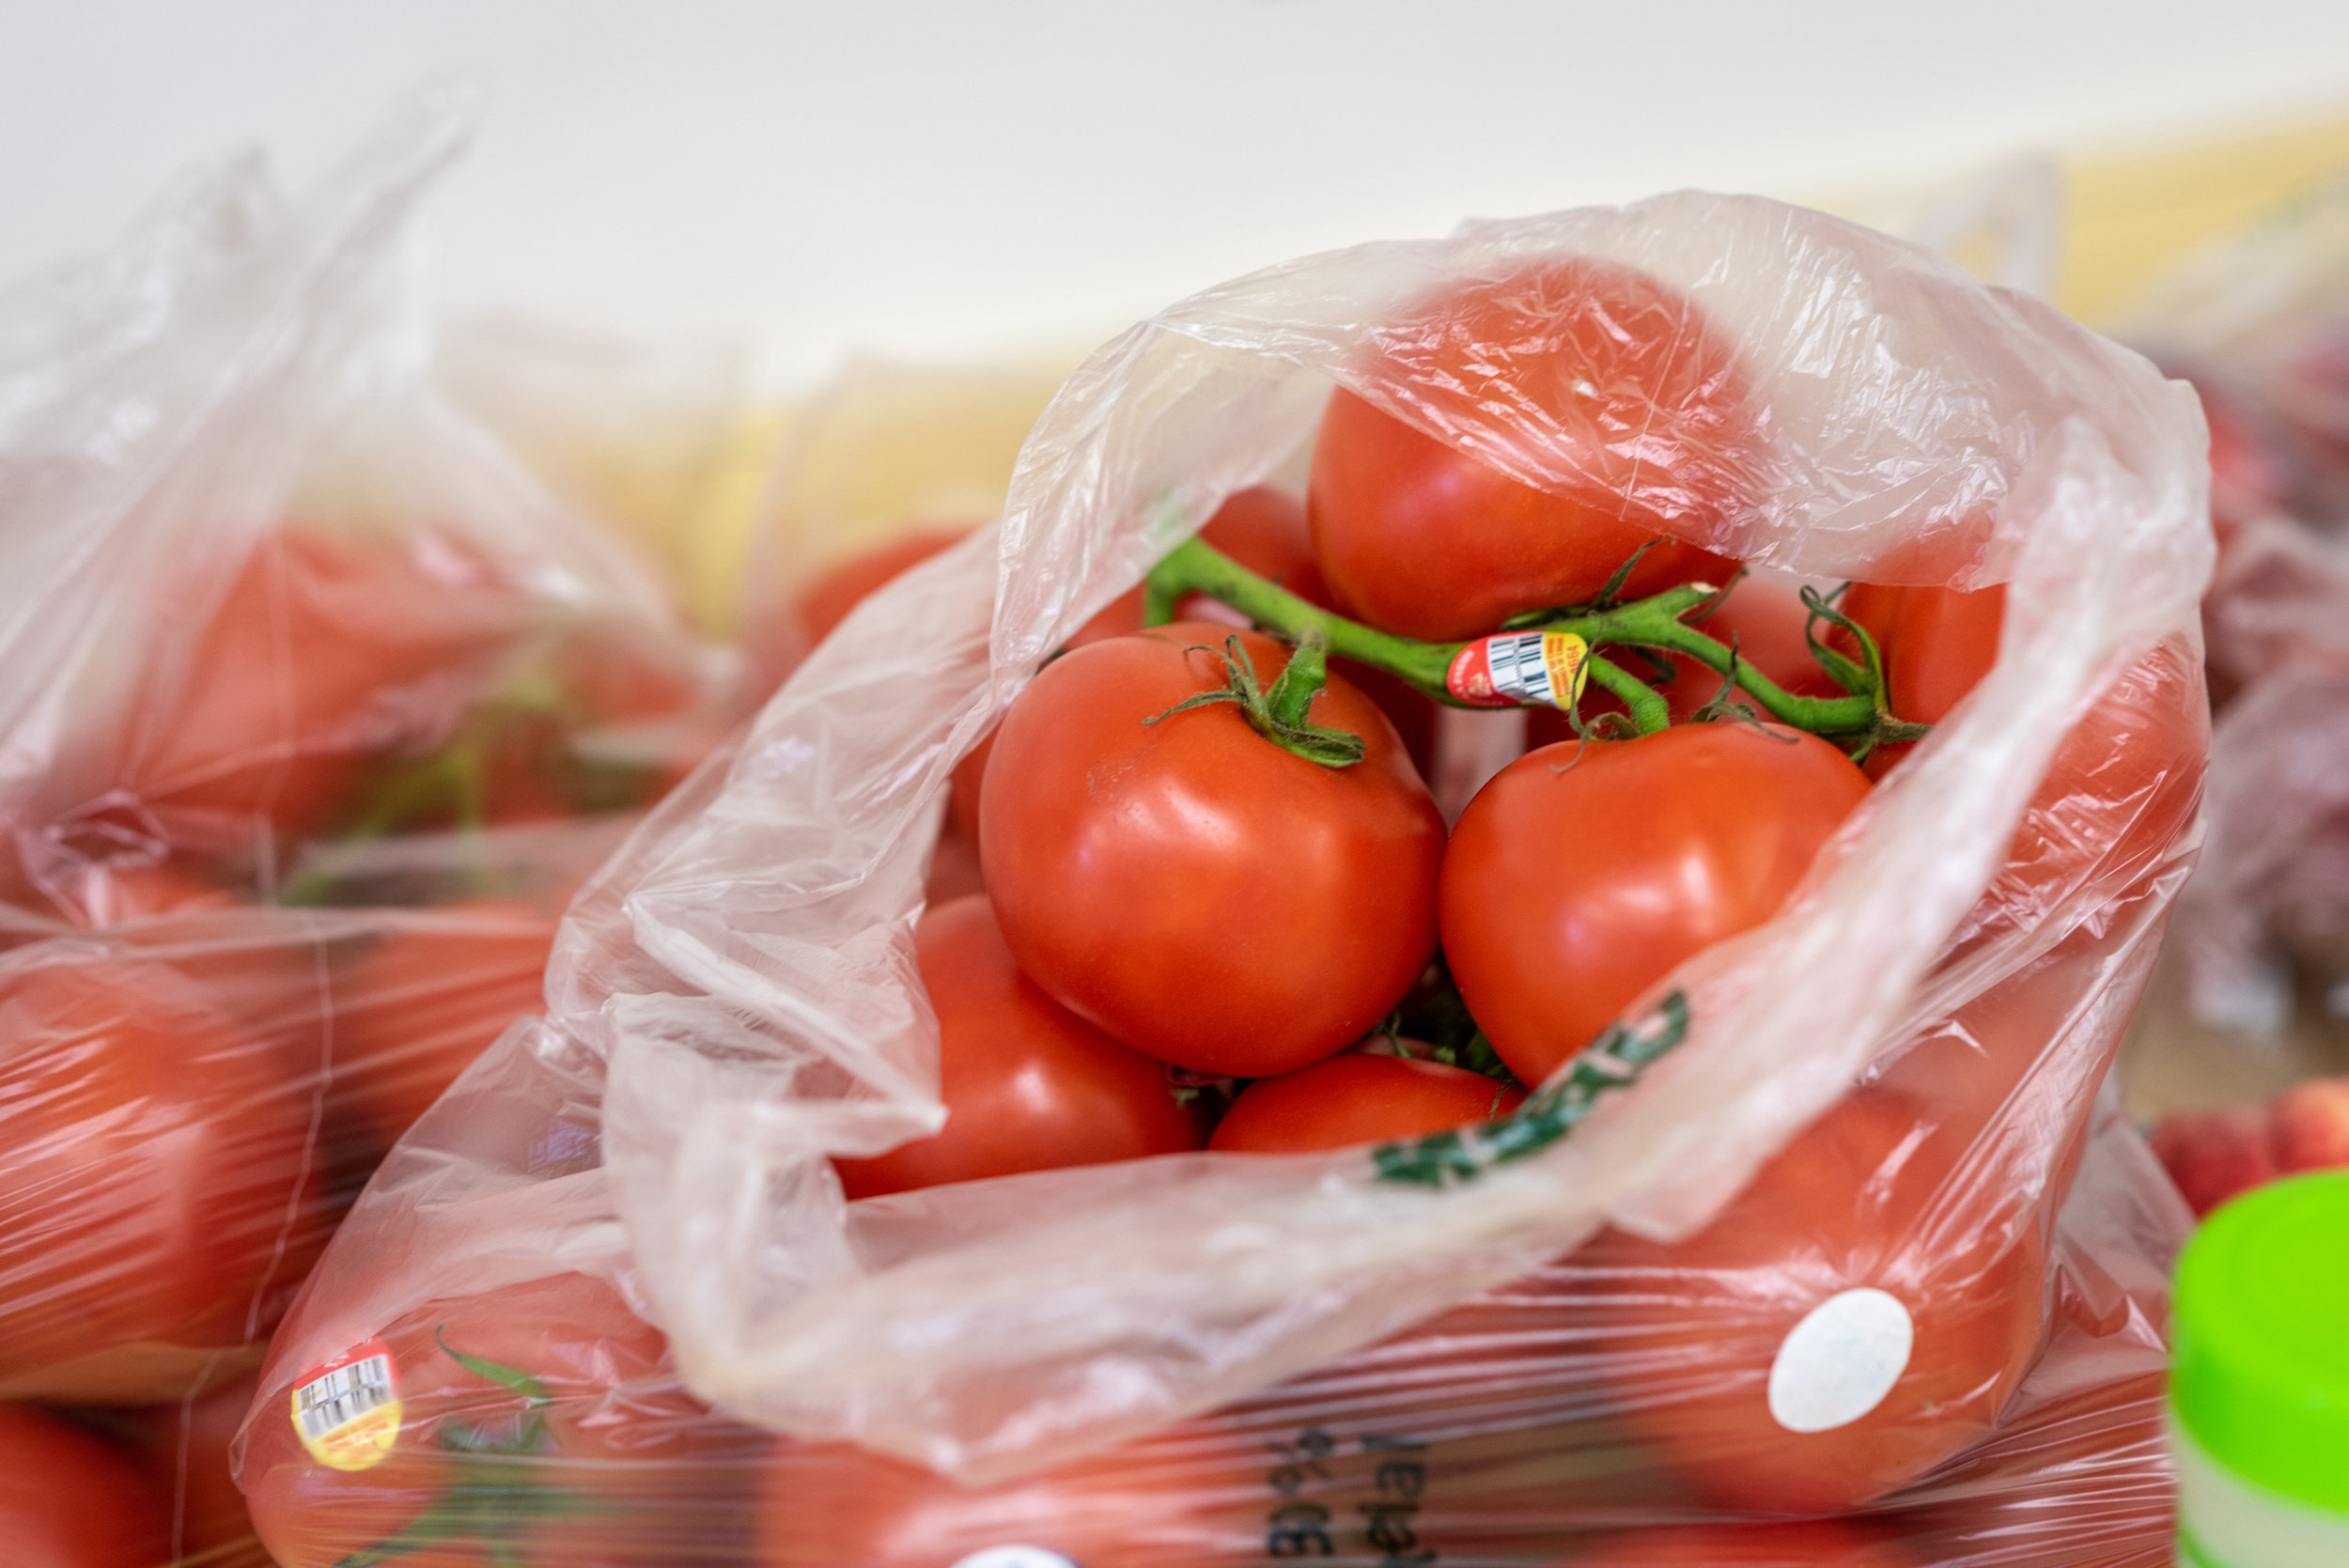 Image is of a sack of tomatoes.  Image by Edwin Remsberg.